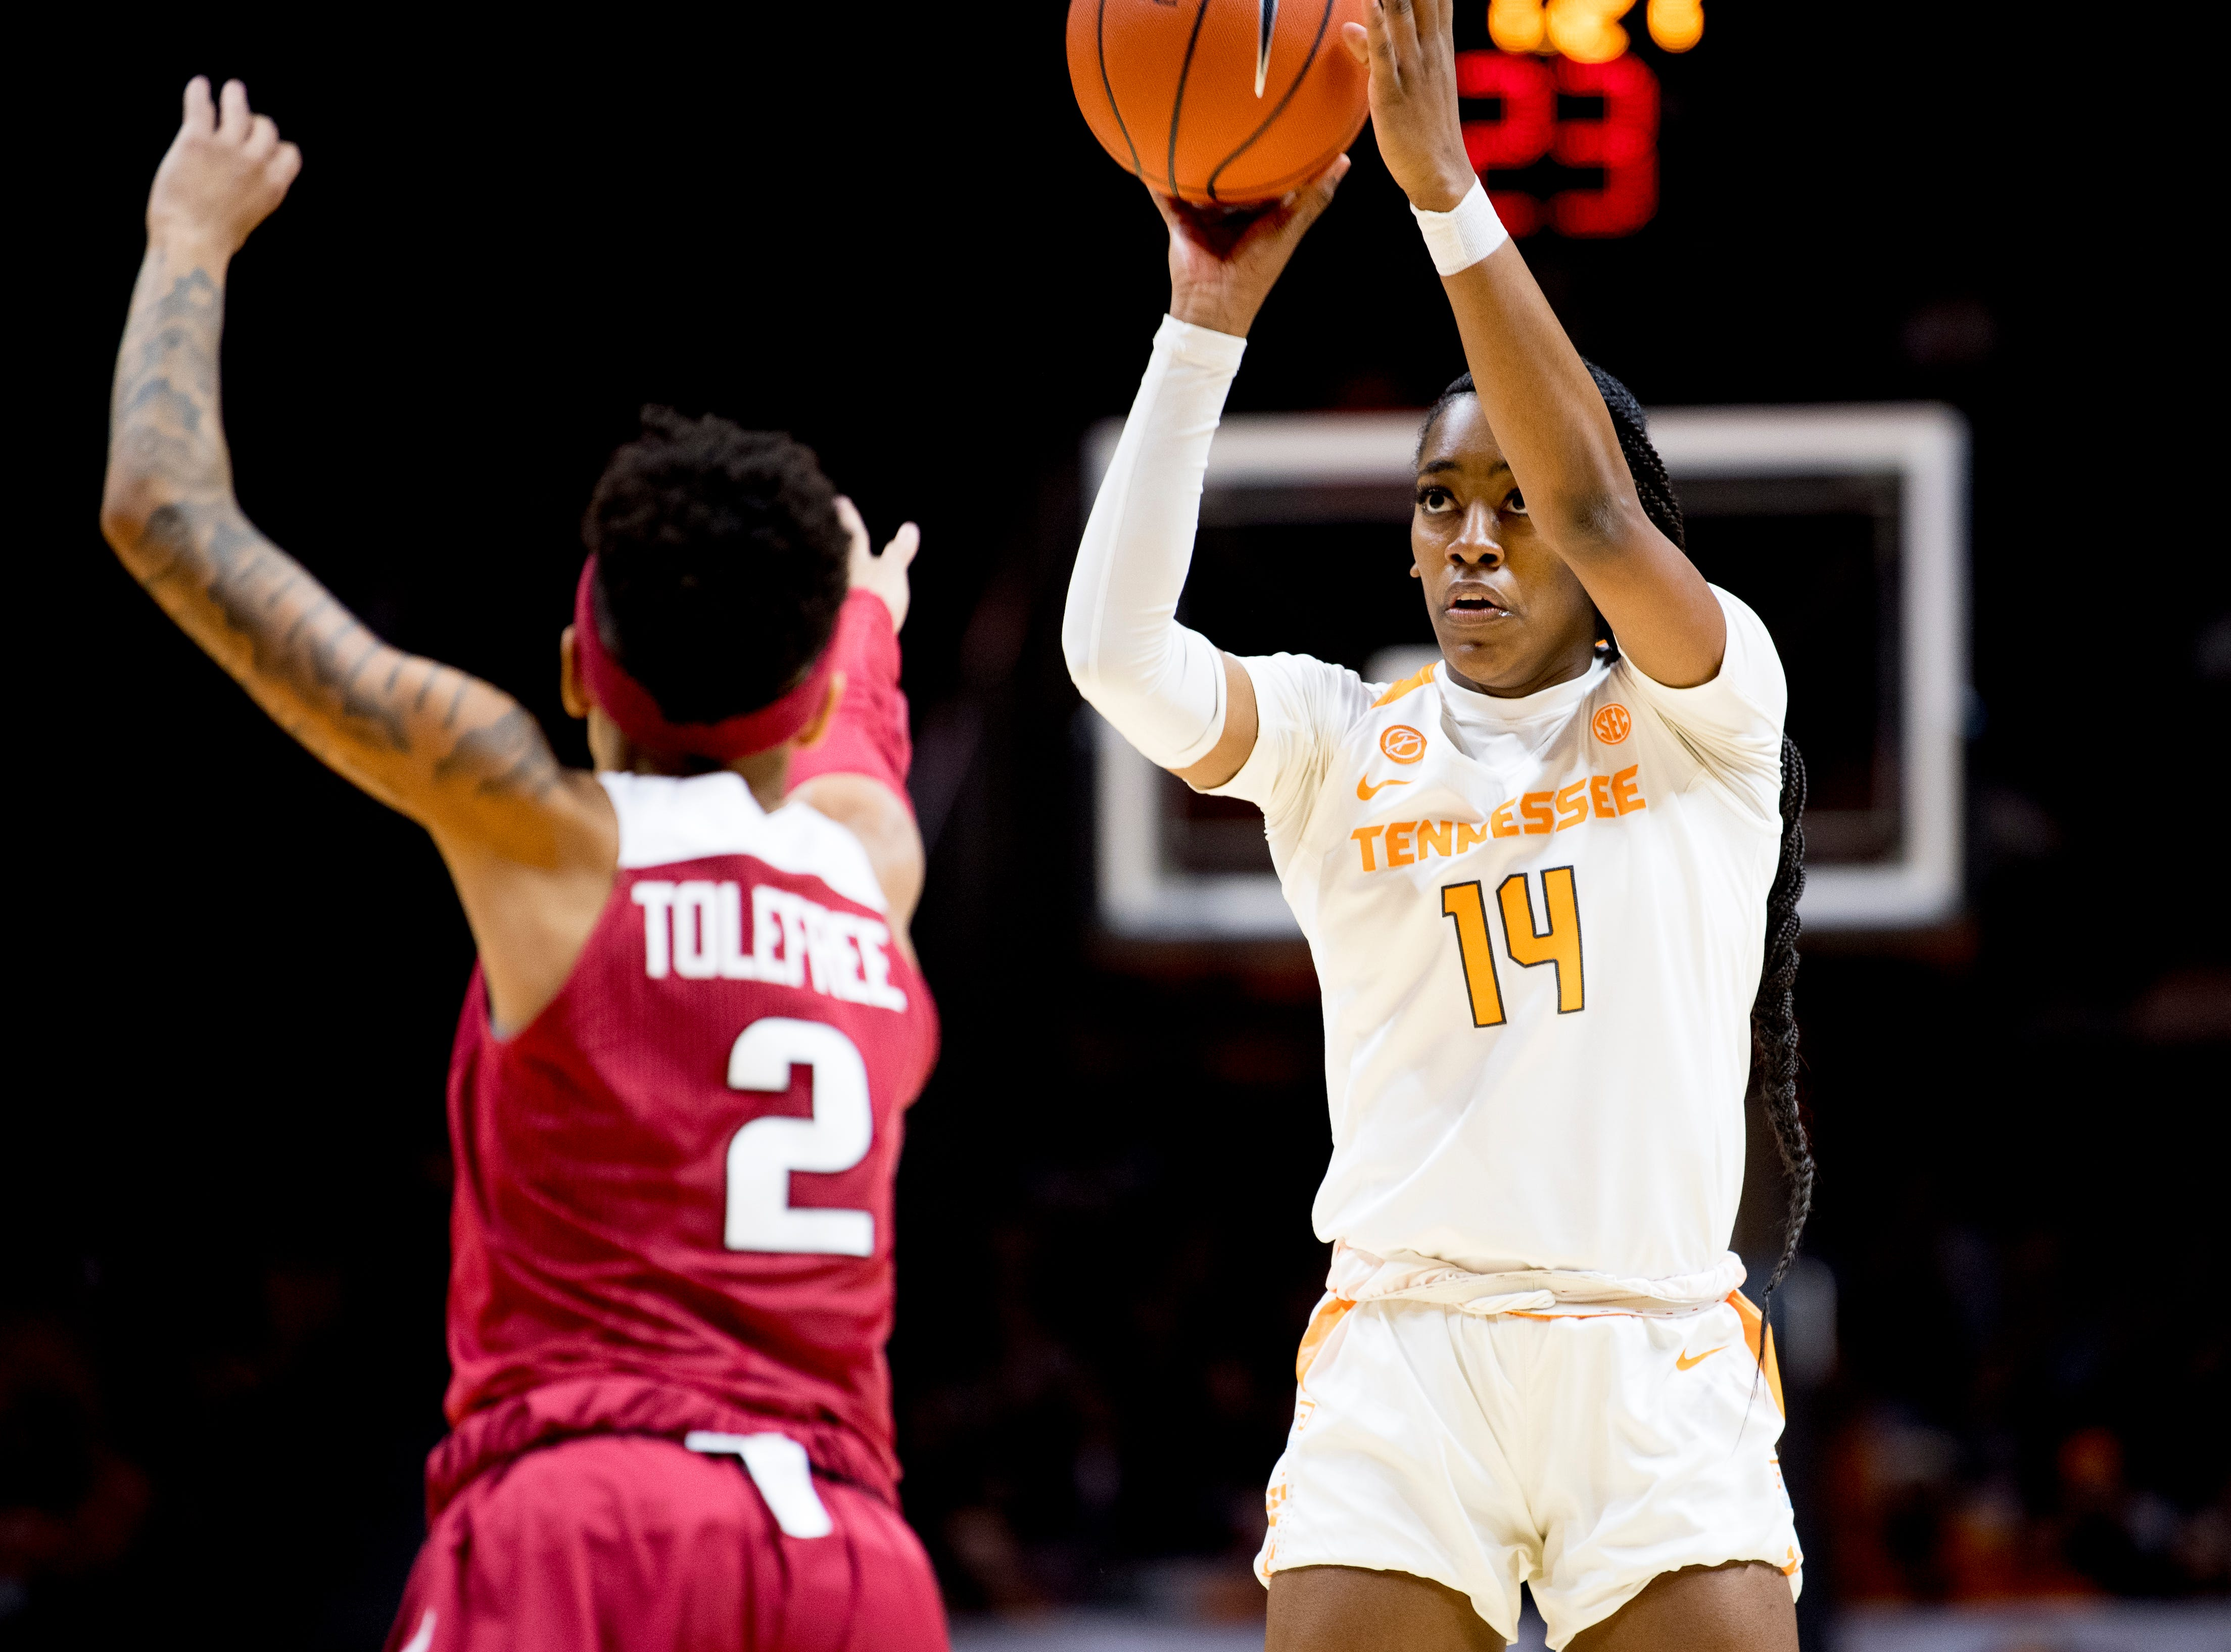 Tennessee guard Zaay Green (14) shoots the ball past Arkansas guard Alexis Tolefree (2) during a game between Tennessee and Arkansas at Thompson-Boling Arena in , Tennessee on Monday, January 21, 2019.